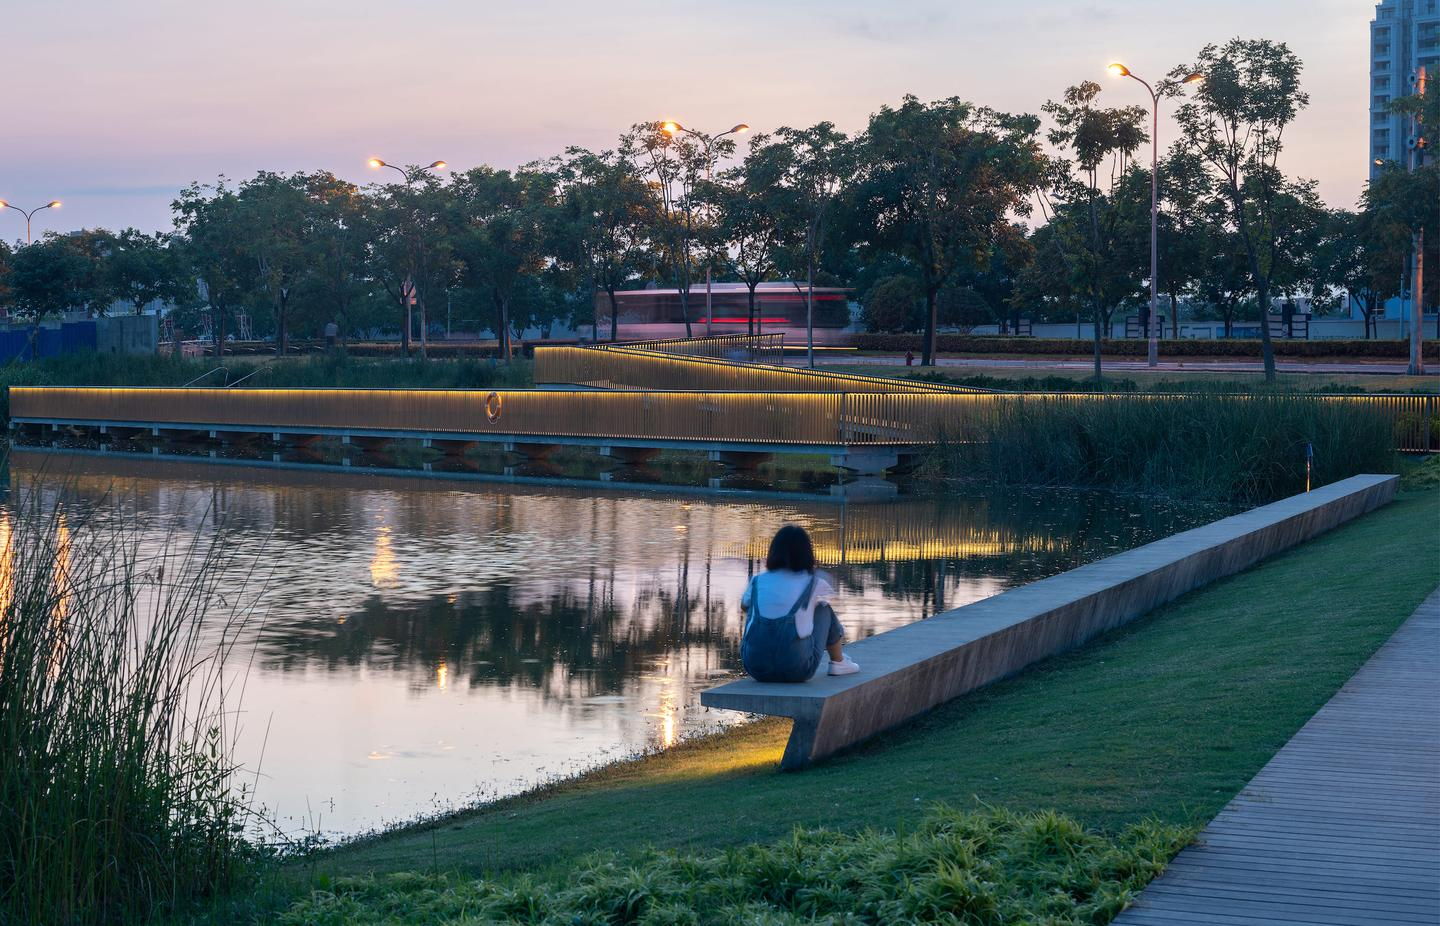 """""""The entire park is universally accessible, providing equal opportunities to people at a full range of ability levels,"""" says Sasaki. """"It has become a year-round outdoor lifestyle destination for nearby residents, office workers, and school students"""""""